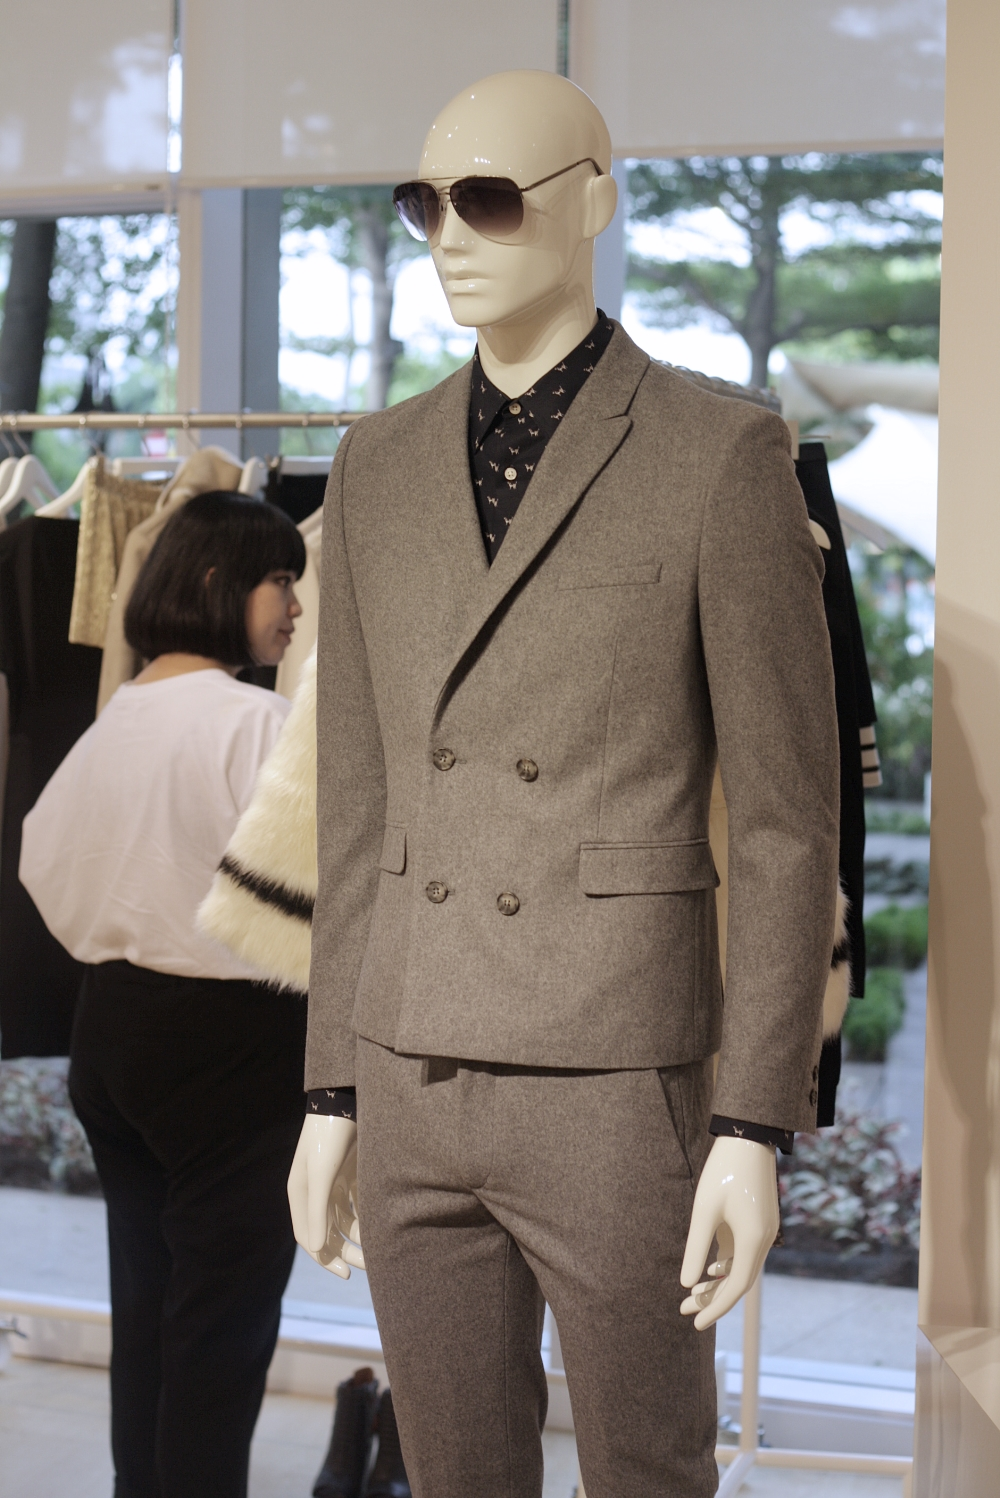 H&M INDONESIA FALL WINTER 2013, SUIT, MENSWEAR